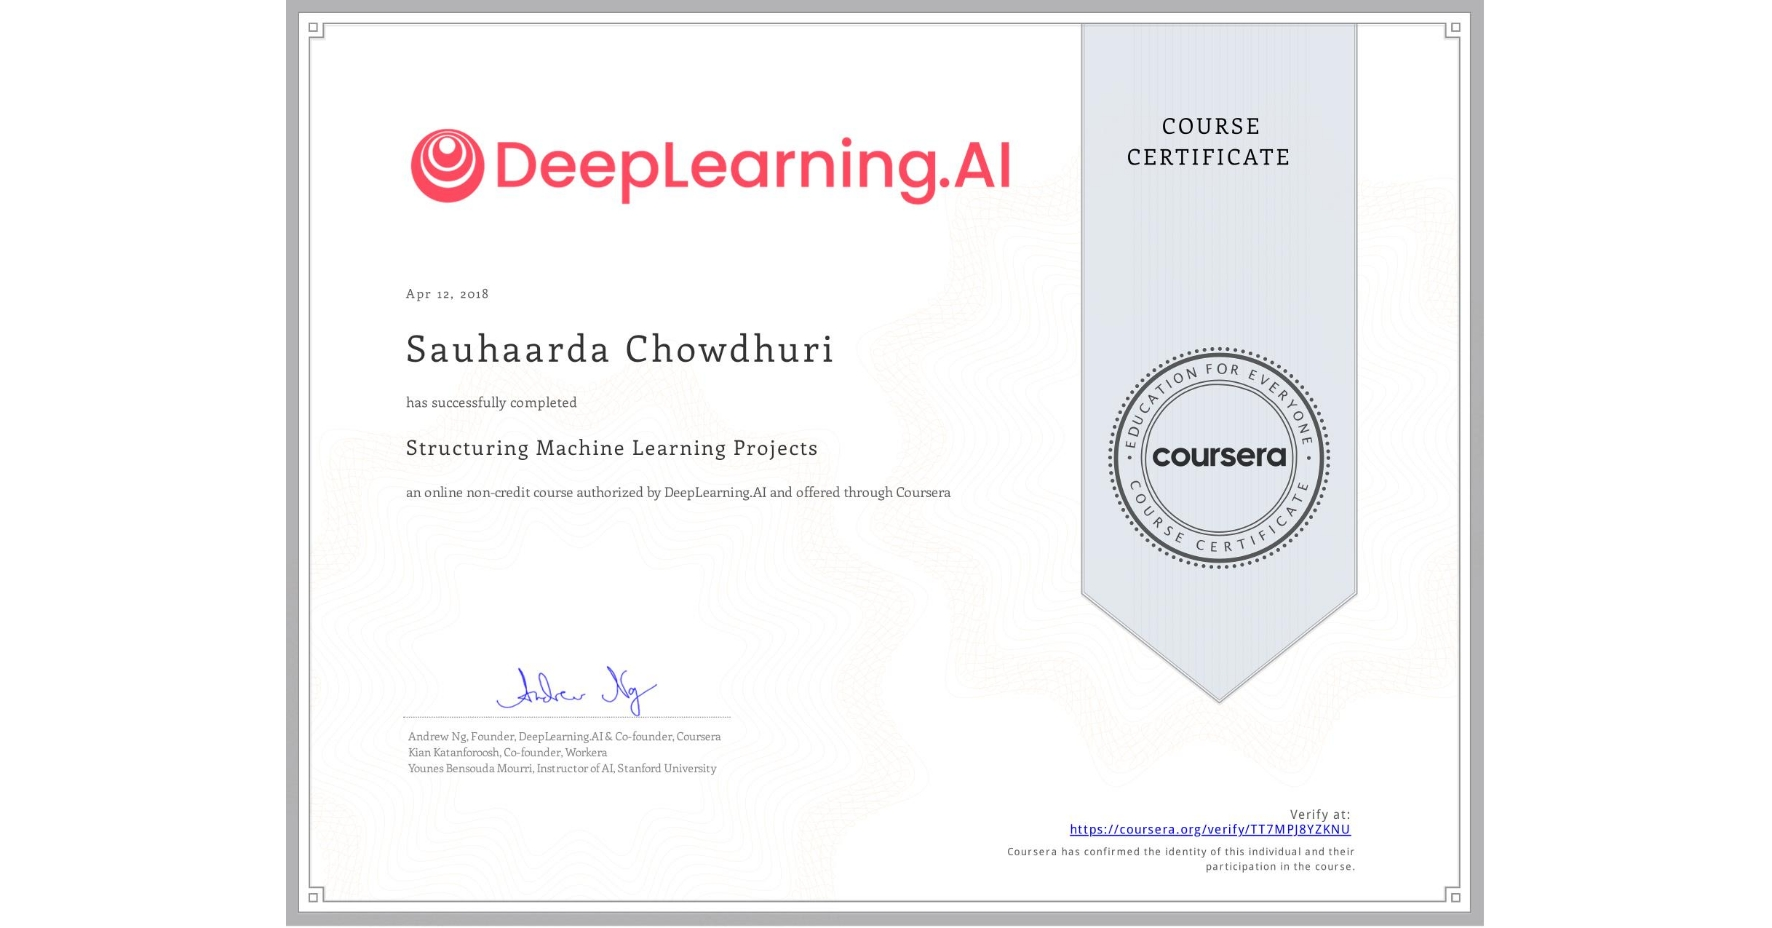 View certificate for Sauhaarda Chowdhuri, Structuring Machine Learning Projects, an online non-credit course authorized by DeepLearning.AI and offered through Coursera